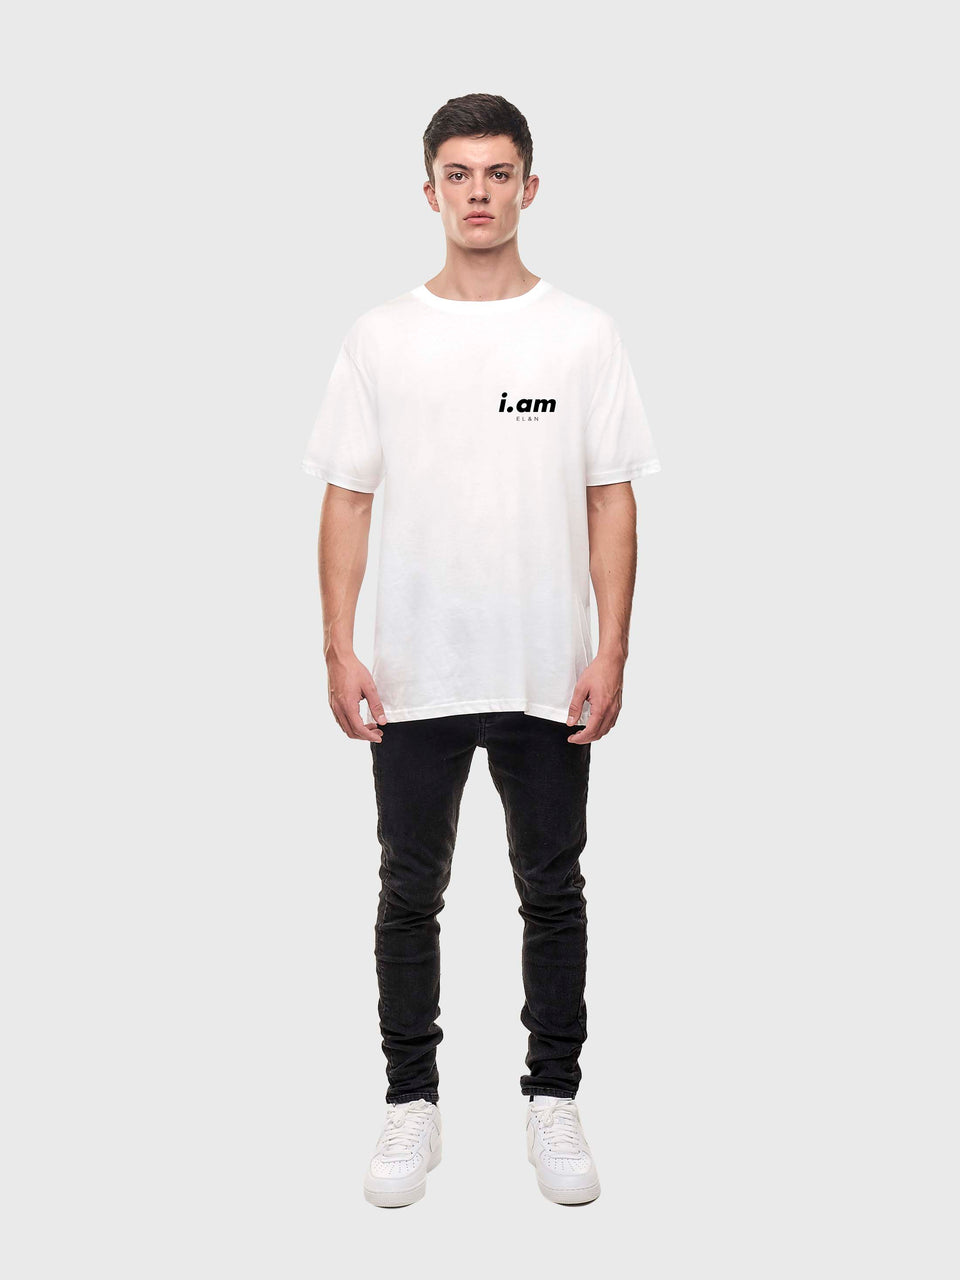 Made in London - White - Unisex T